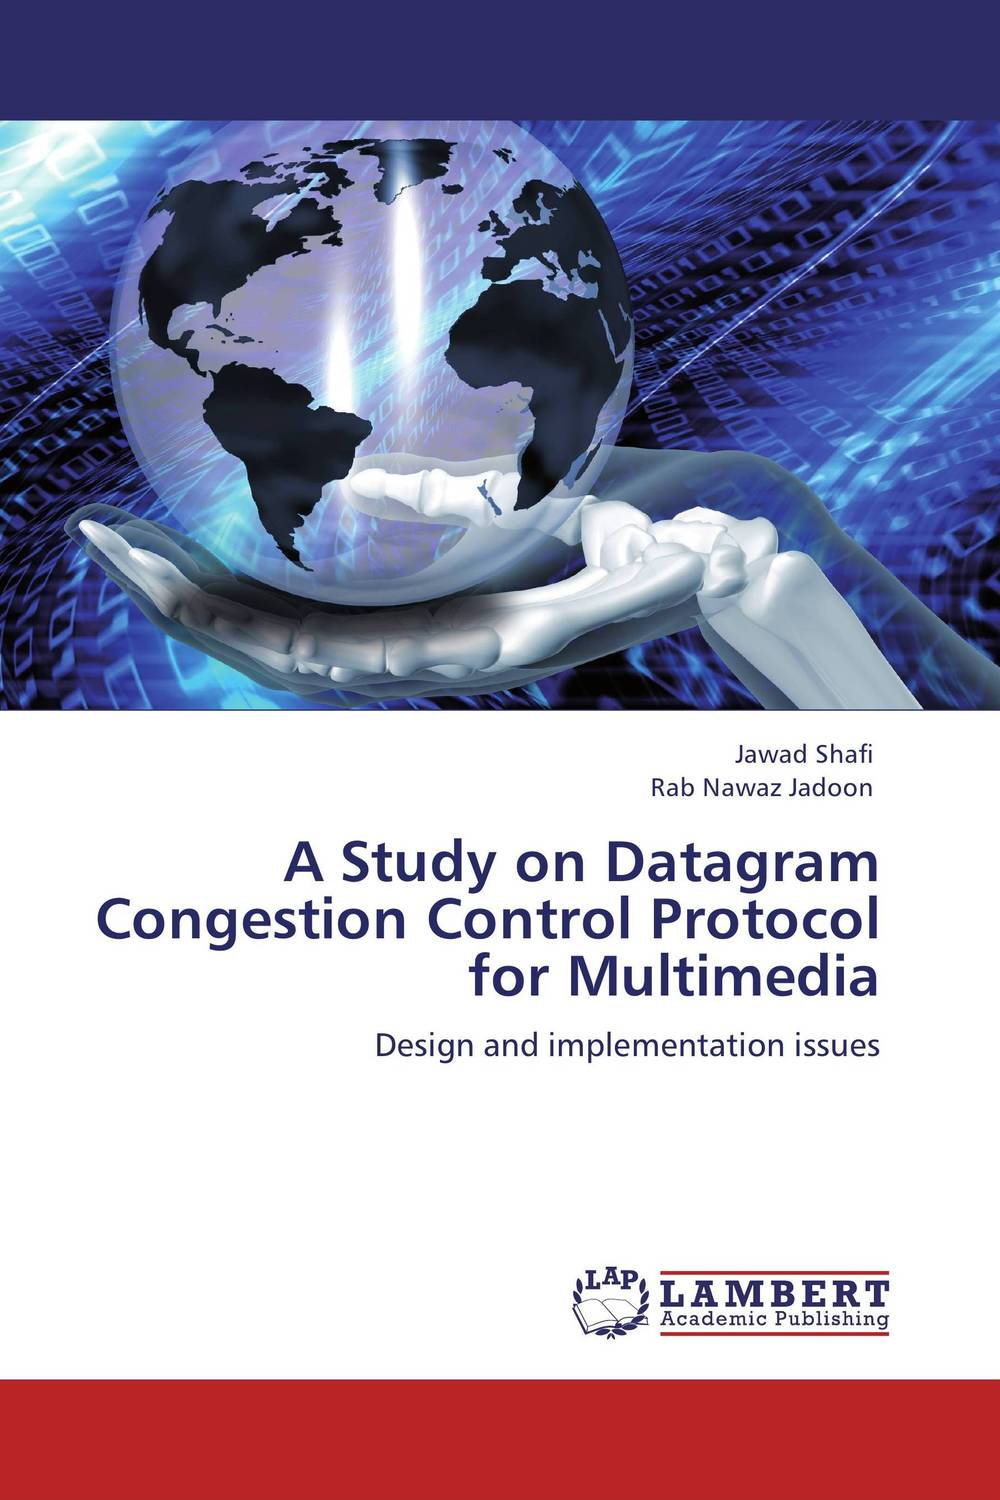 A Study on Datagram Congestion Control Protocol for Multimedia elk stack 权威指南